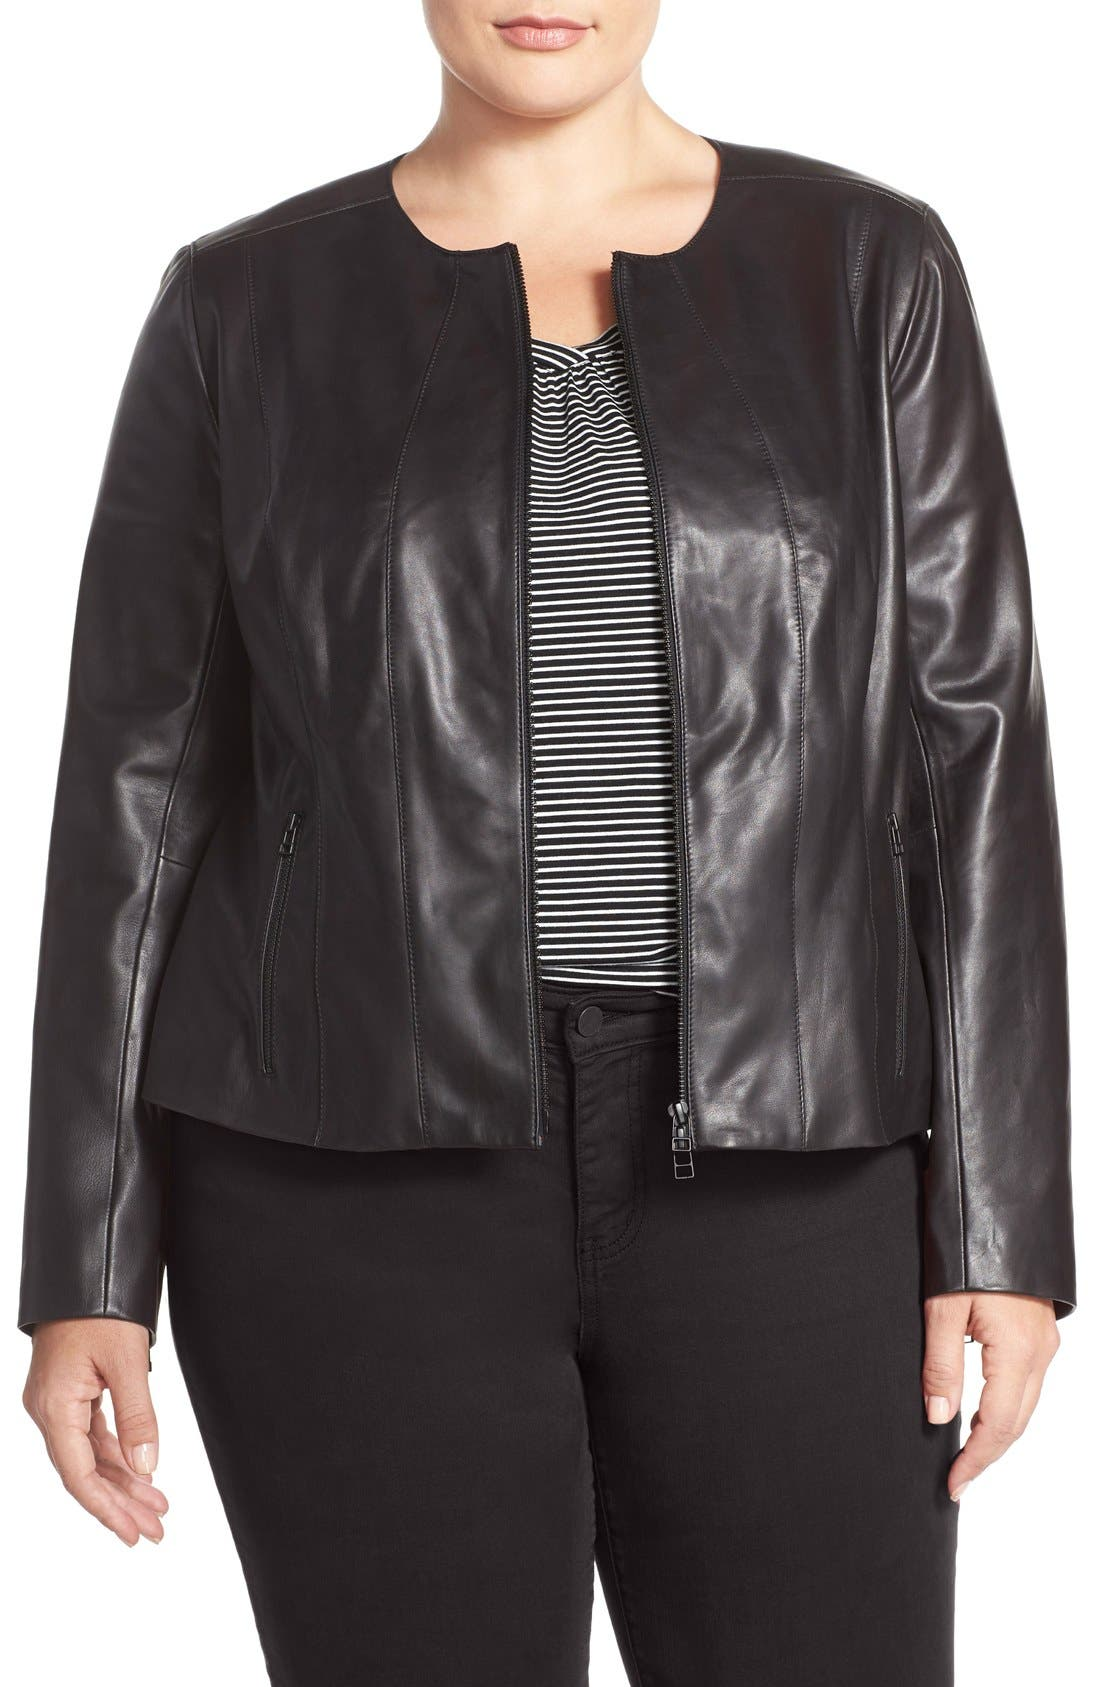 Alternate Image 1 Selected - Halogen® Collarless Leather Jacket (Plus Size)